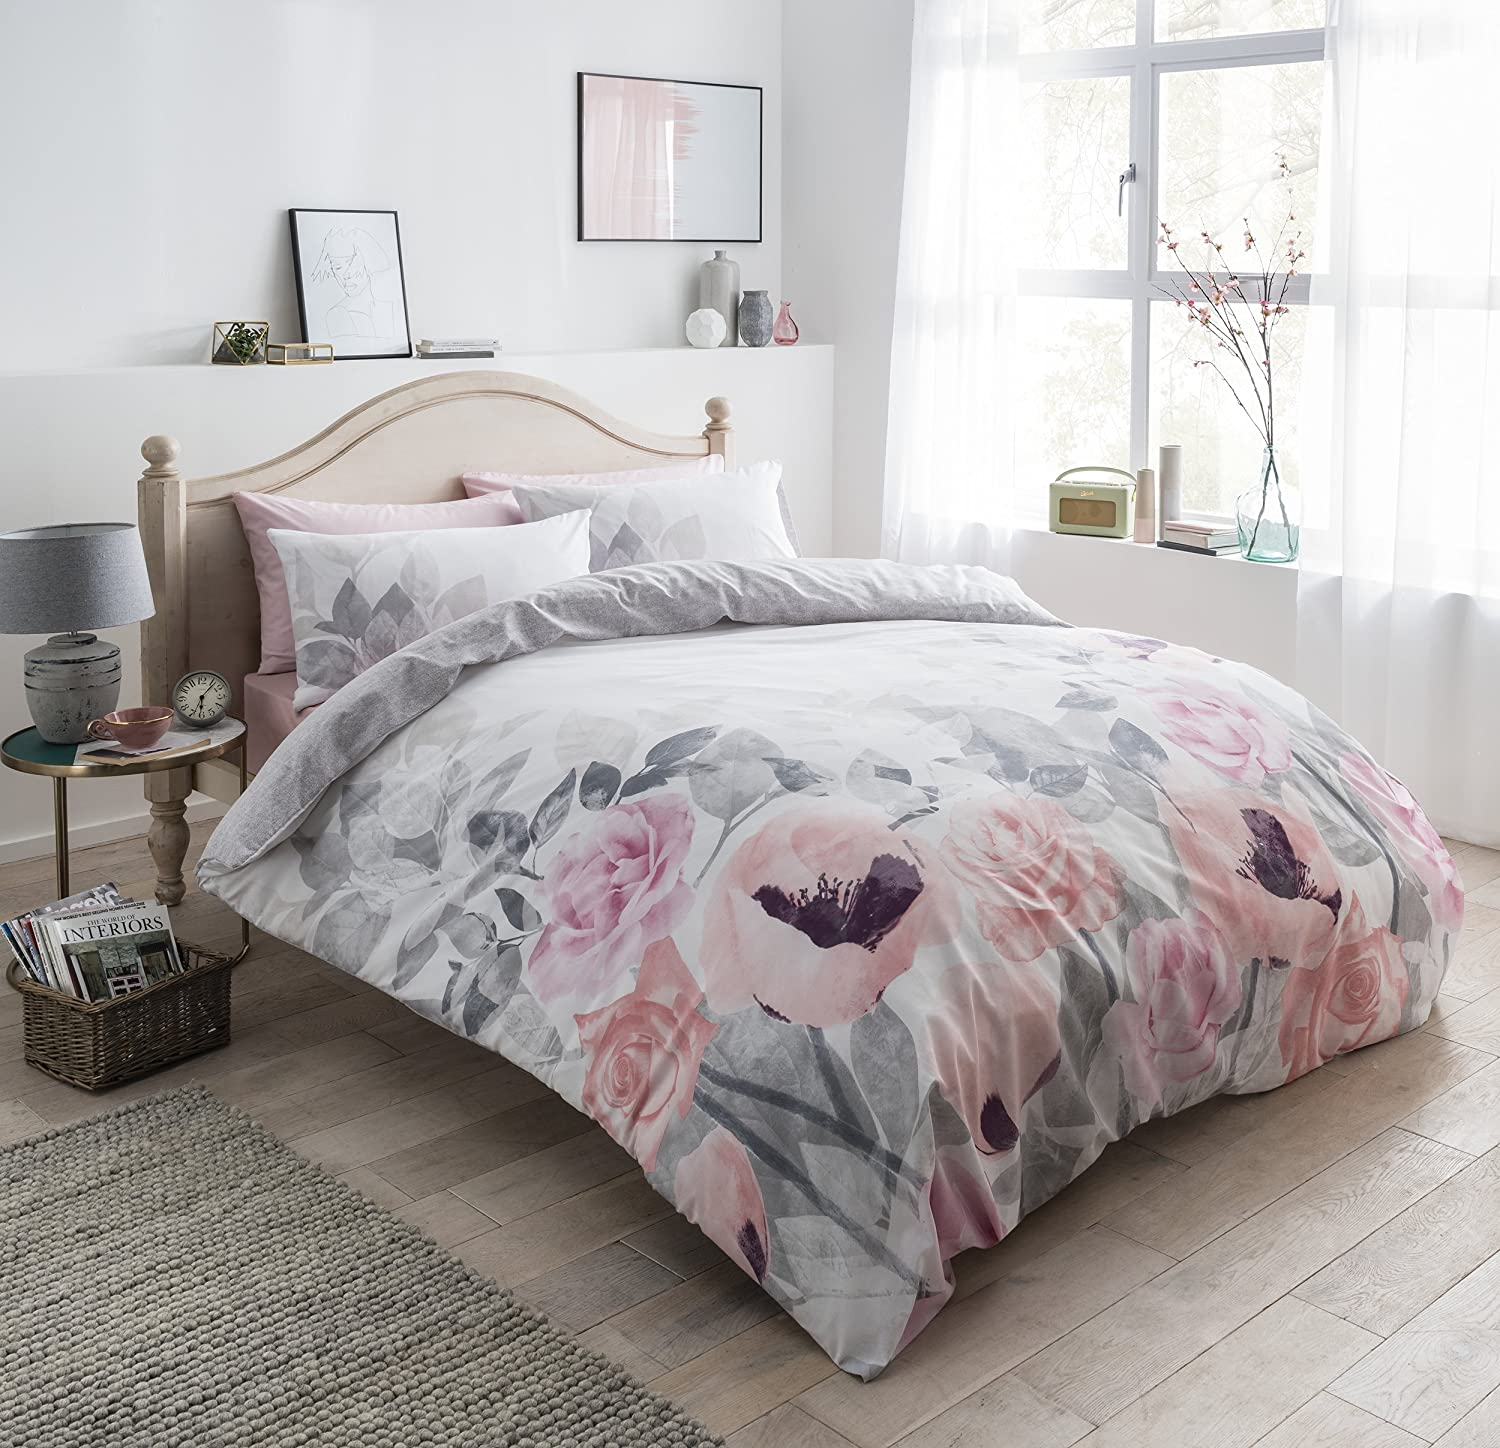 NEW 2019 Duvet Cover Pillow Case Quilt Bedding Set Single Double King MILA PINK